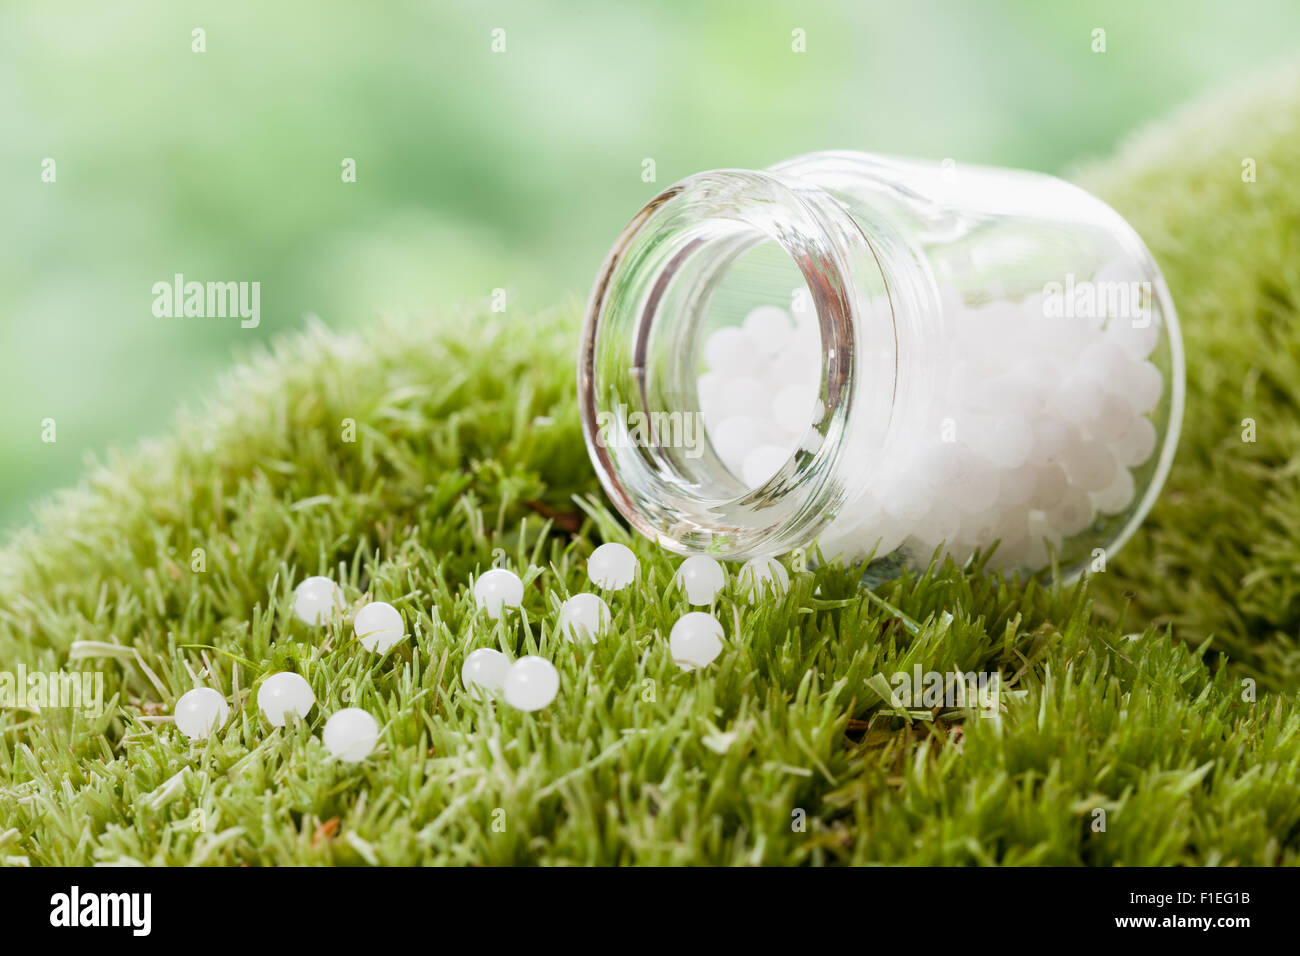 Bottle of homeopathy globules on green moss. Selective focus. - Stock Image